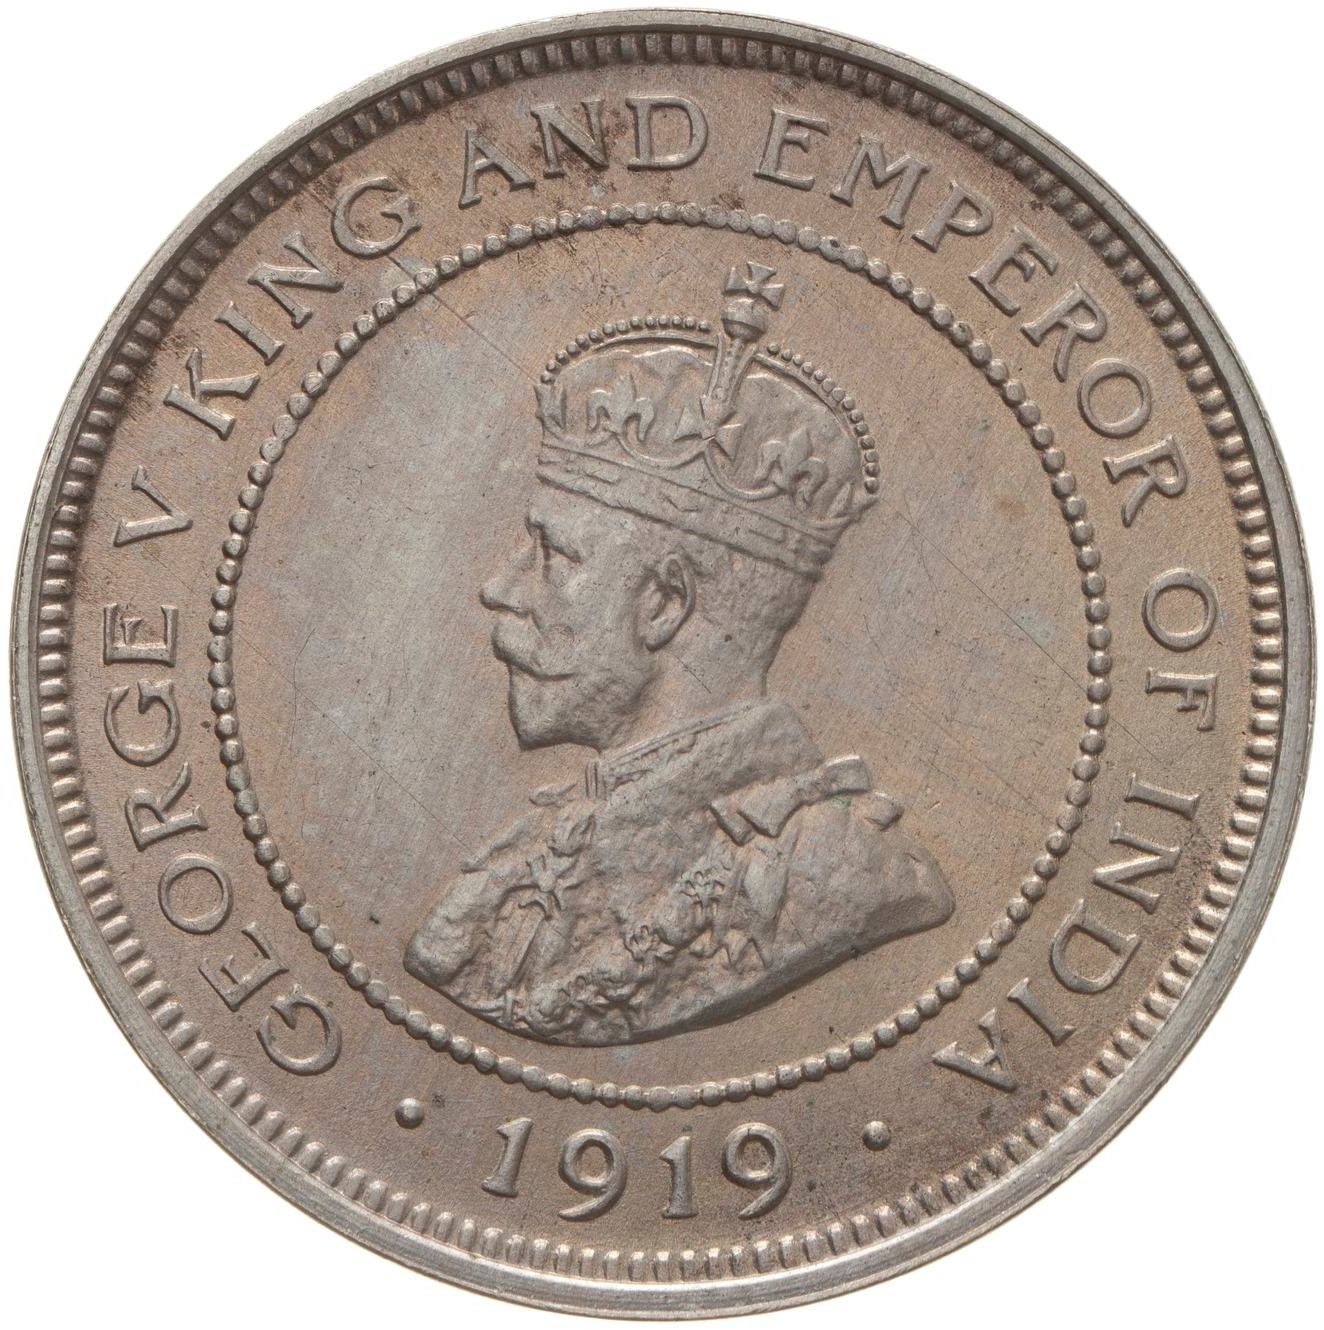 Five Cents: Photo Coin - 5 Cents, British Honduras (Belize), 1919